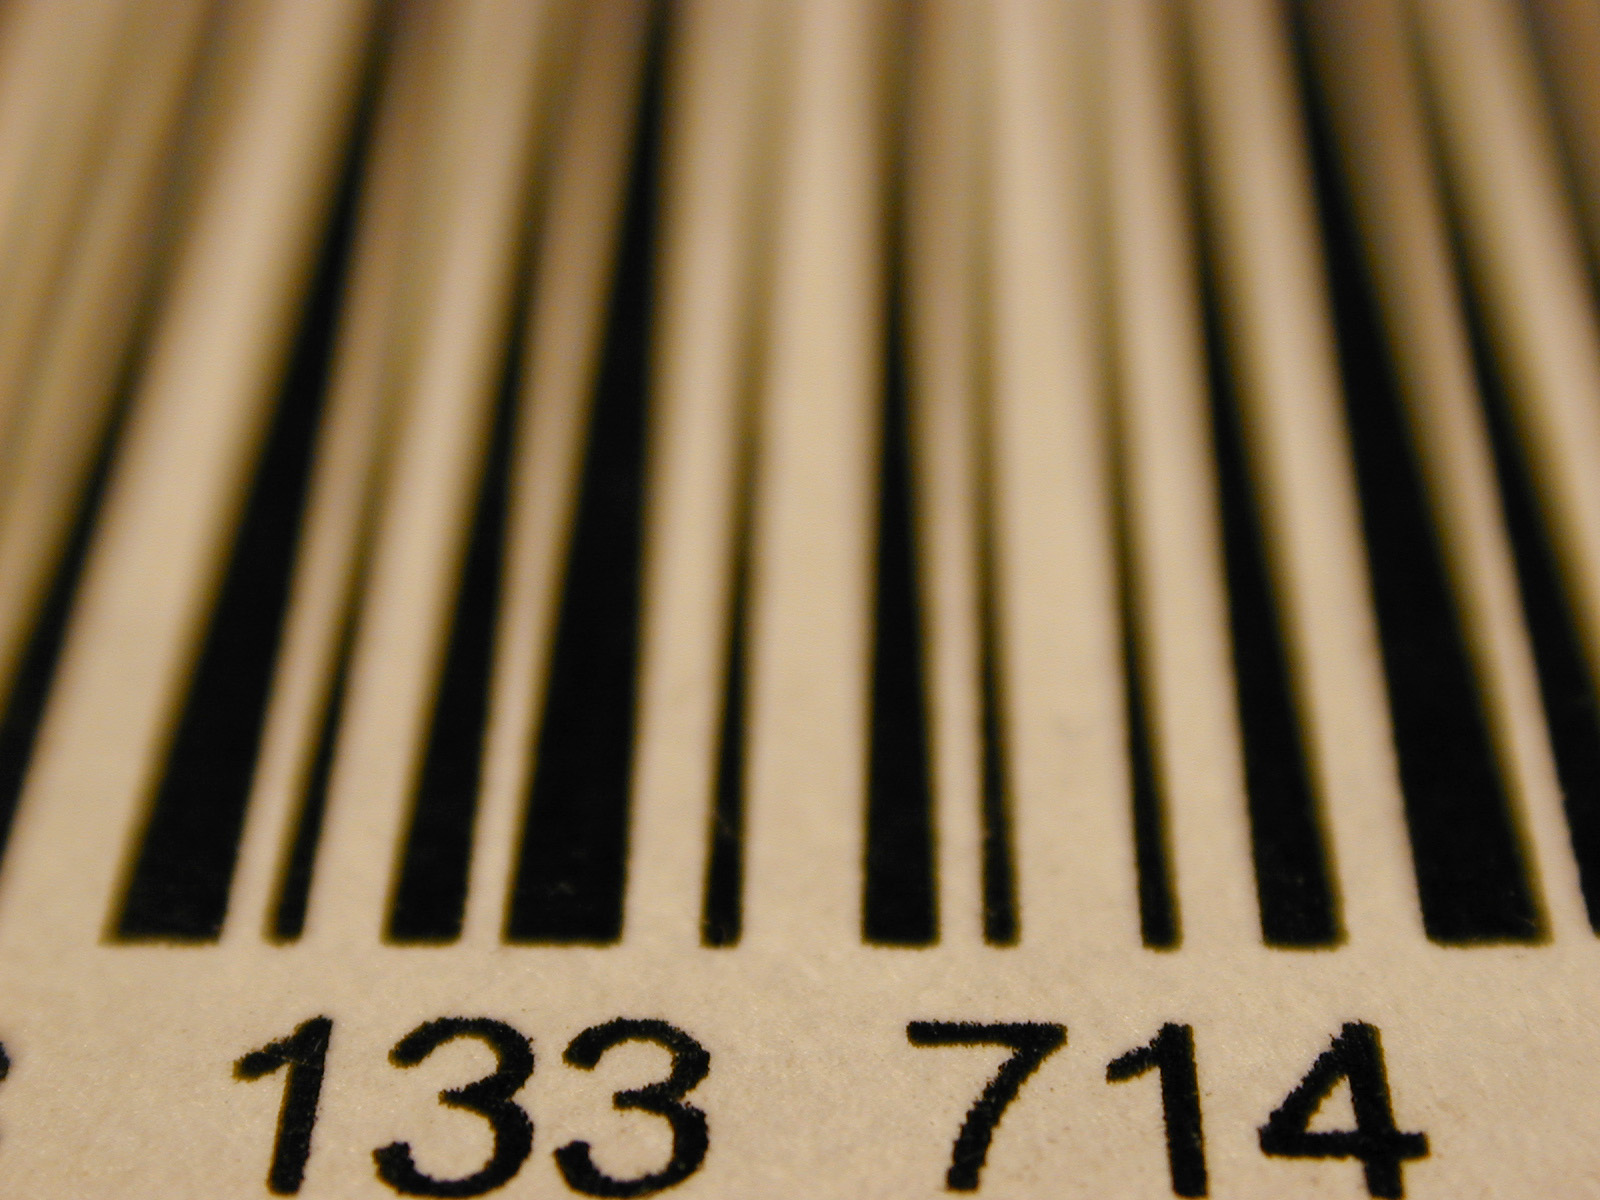 Using Bar Code Technology in Asset Management